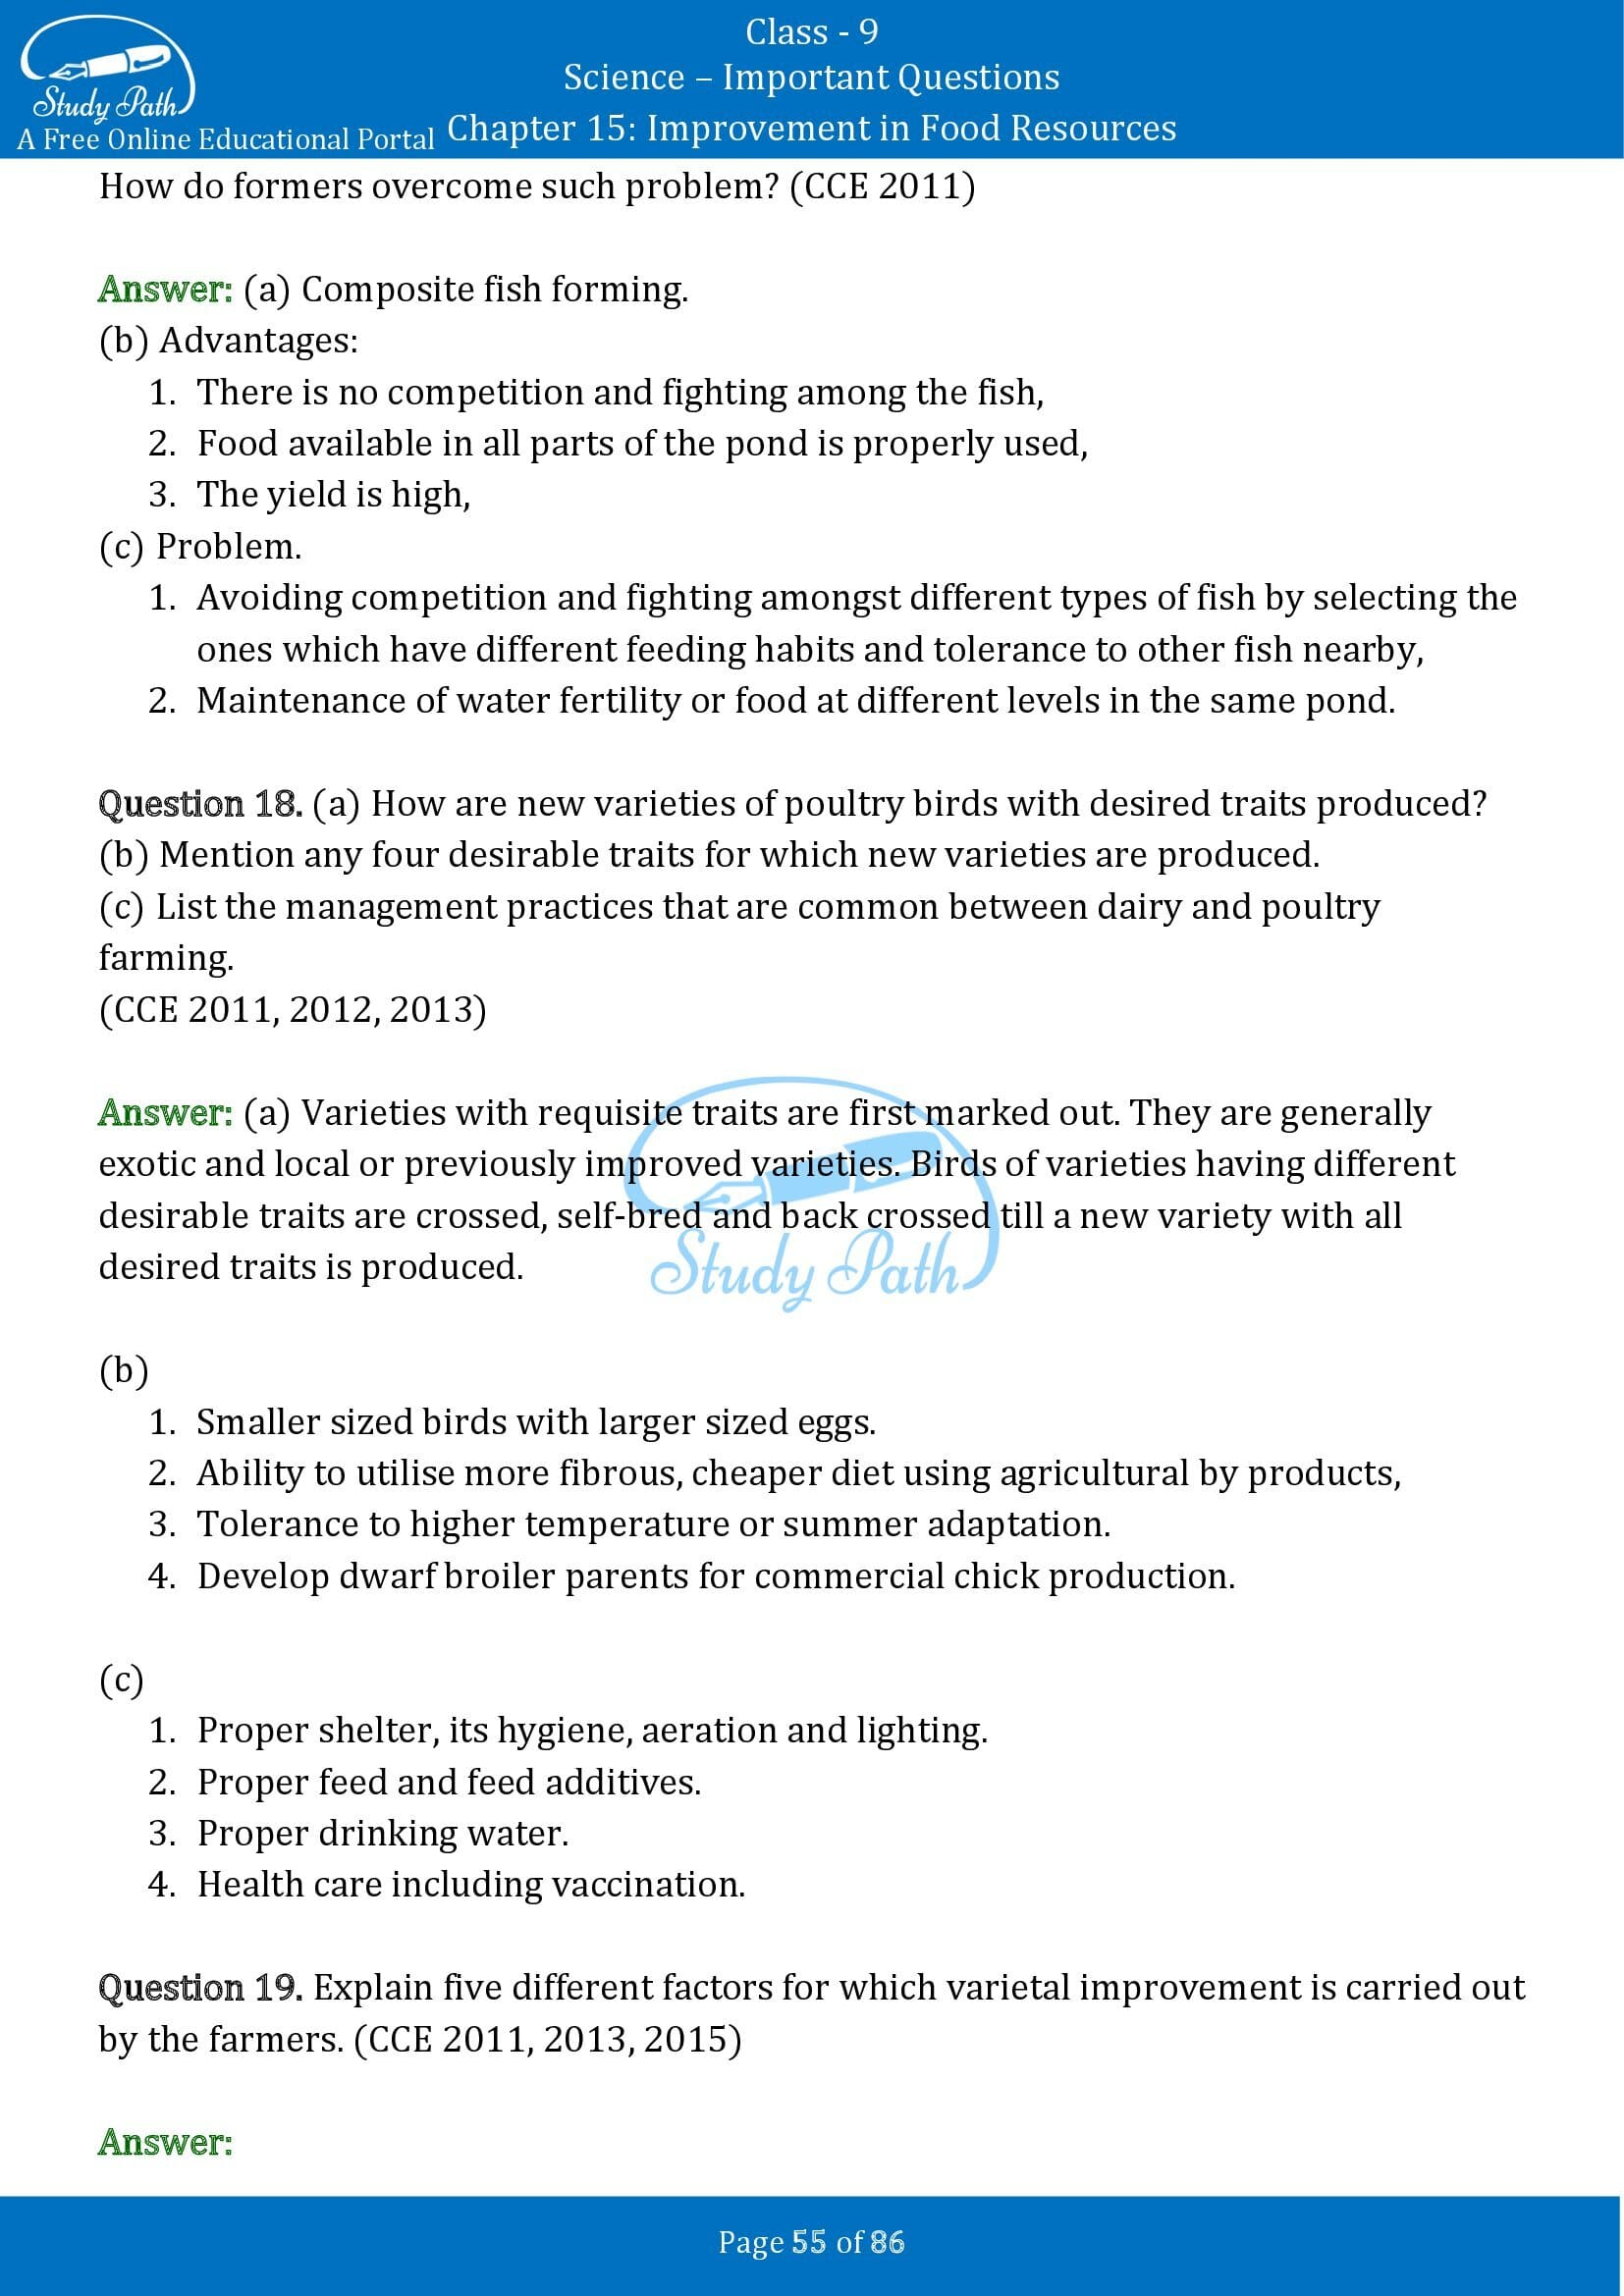 Important Questions for Class 9 Science Chapter 15 Improvement in Food Resources 00055